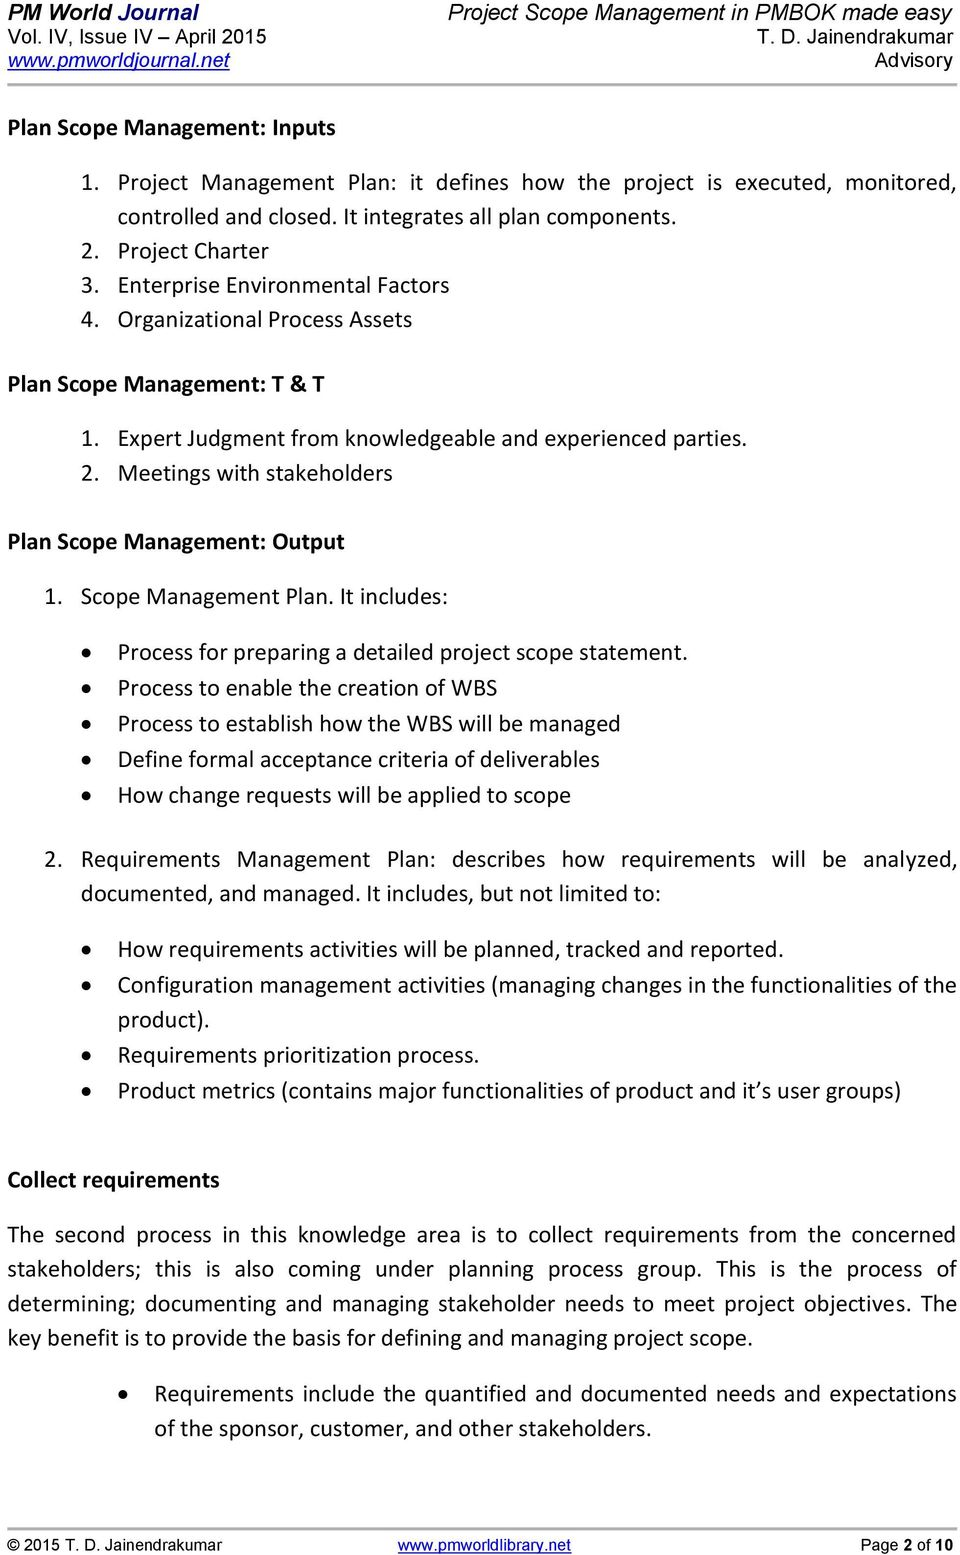 Meetings with stakeholders Plan Scope Management: Output 1. Scope Management Plan. It includes: Process for preparing a detailed project scope statement.